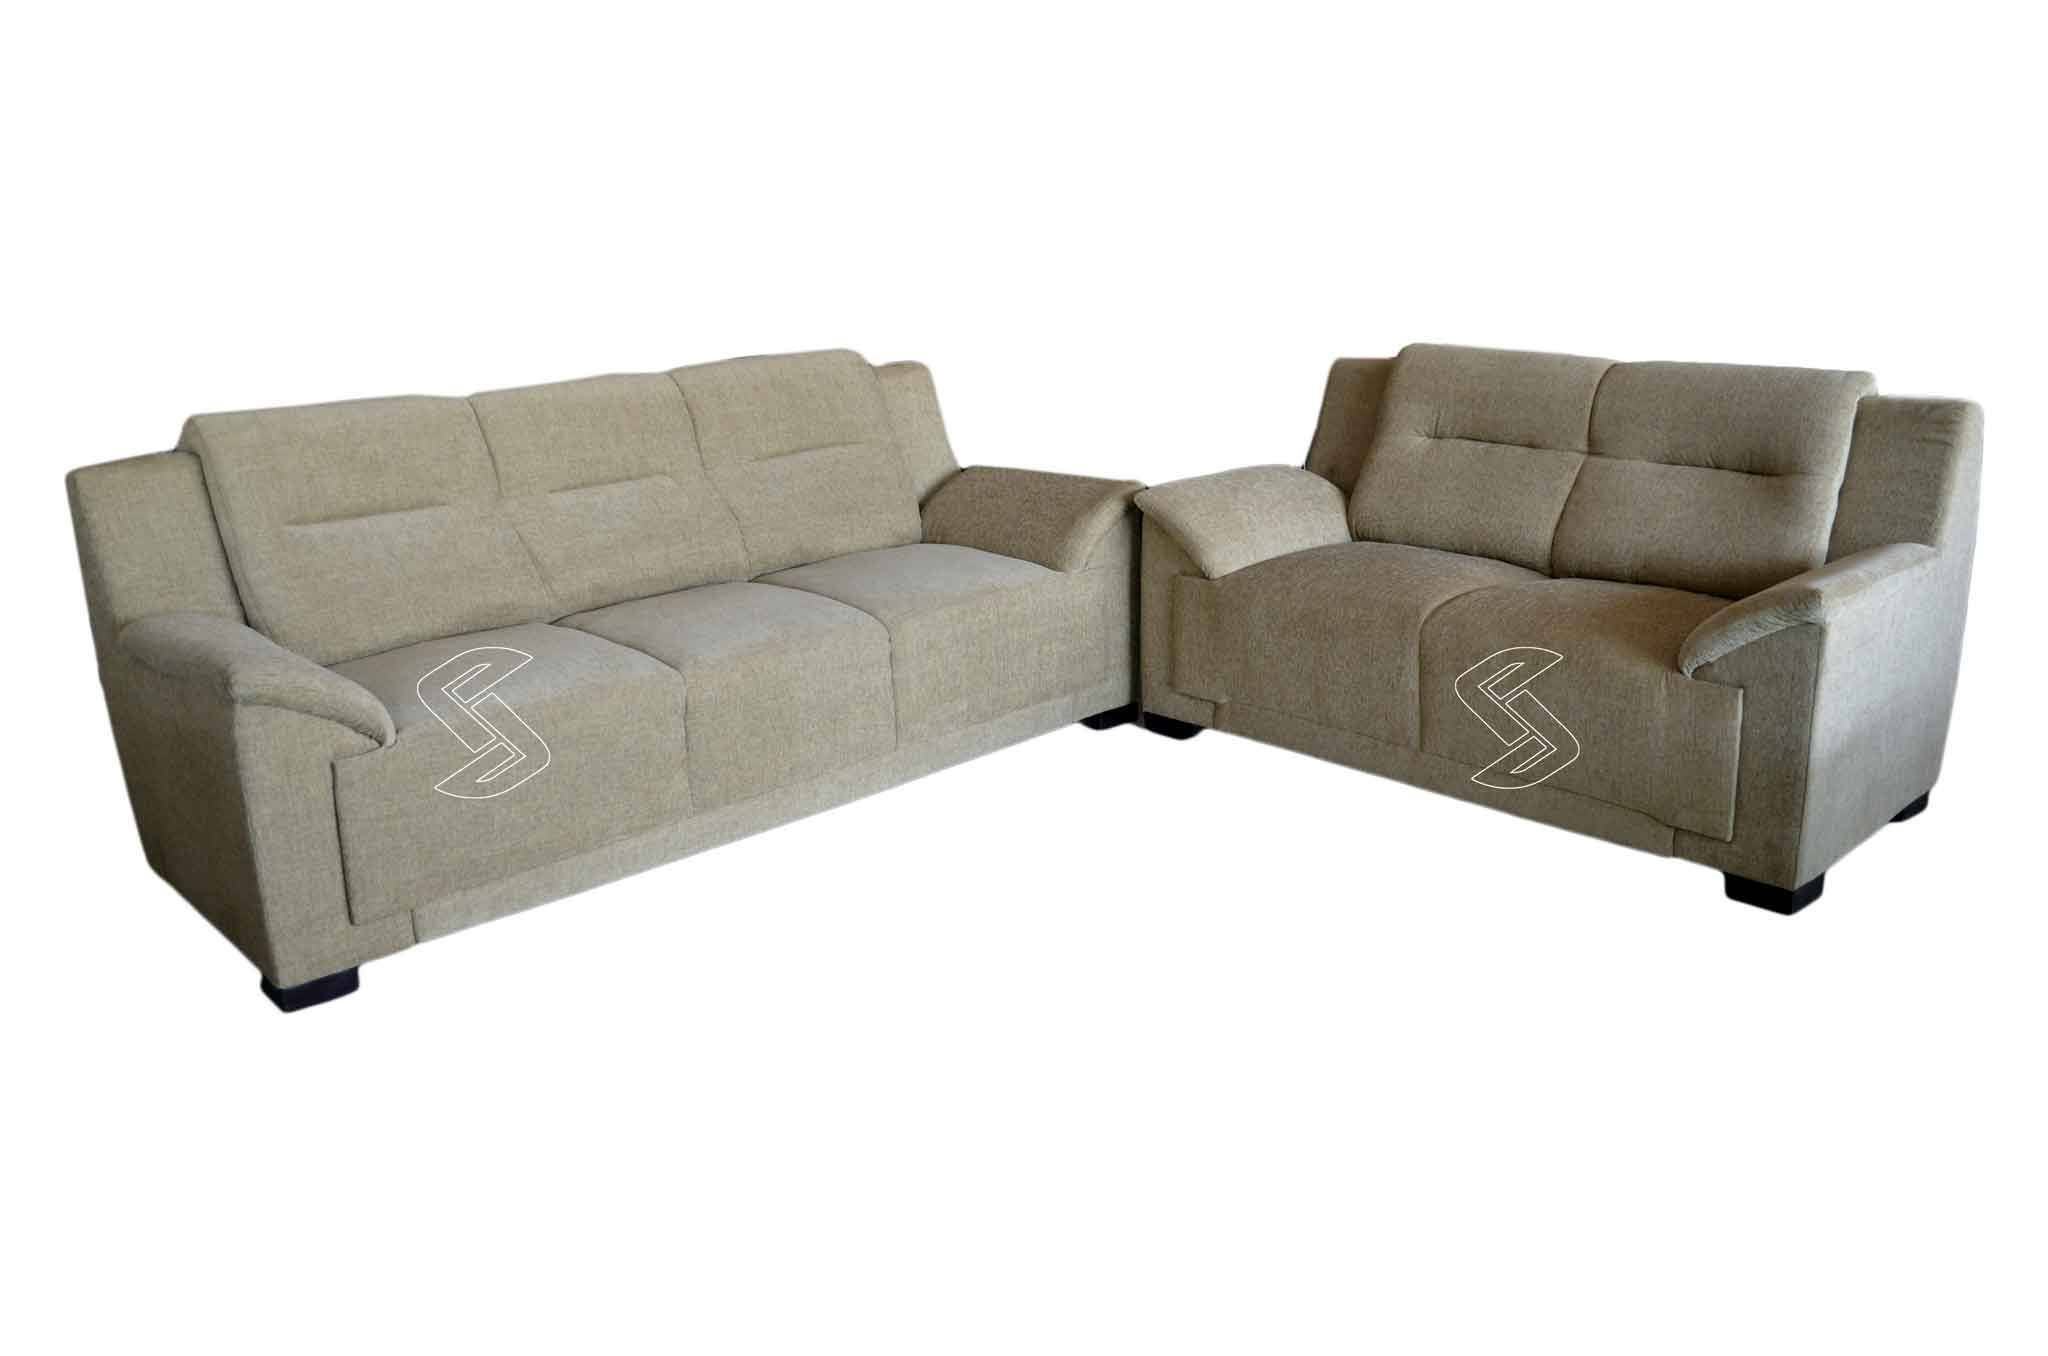 Marvelous Doxsa Fabric 3 2 Sofa Set Beige Gmtry Best Dining Table And Chair Ideas Images Gmtryco